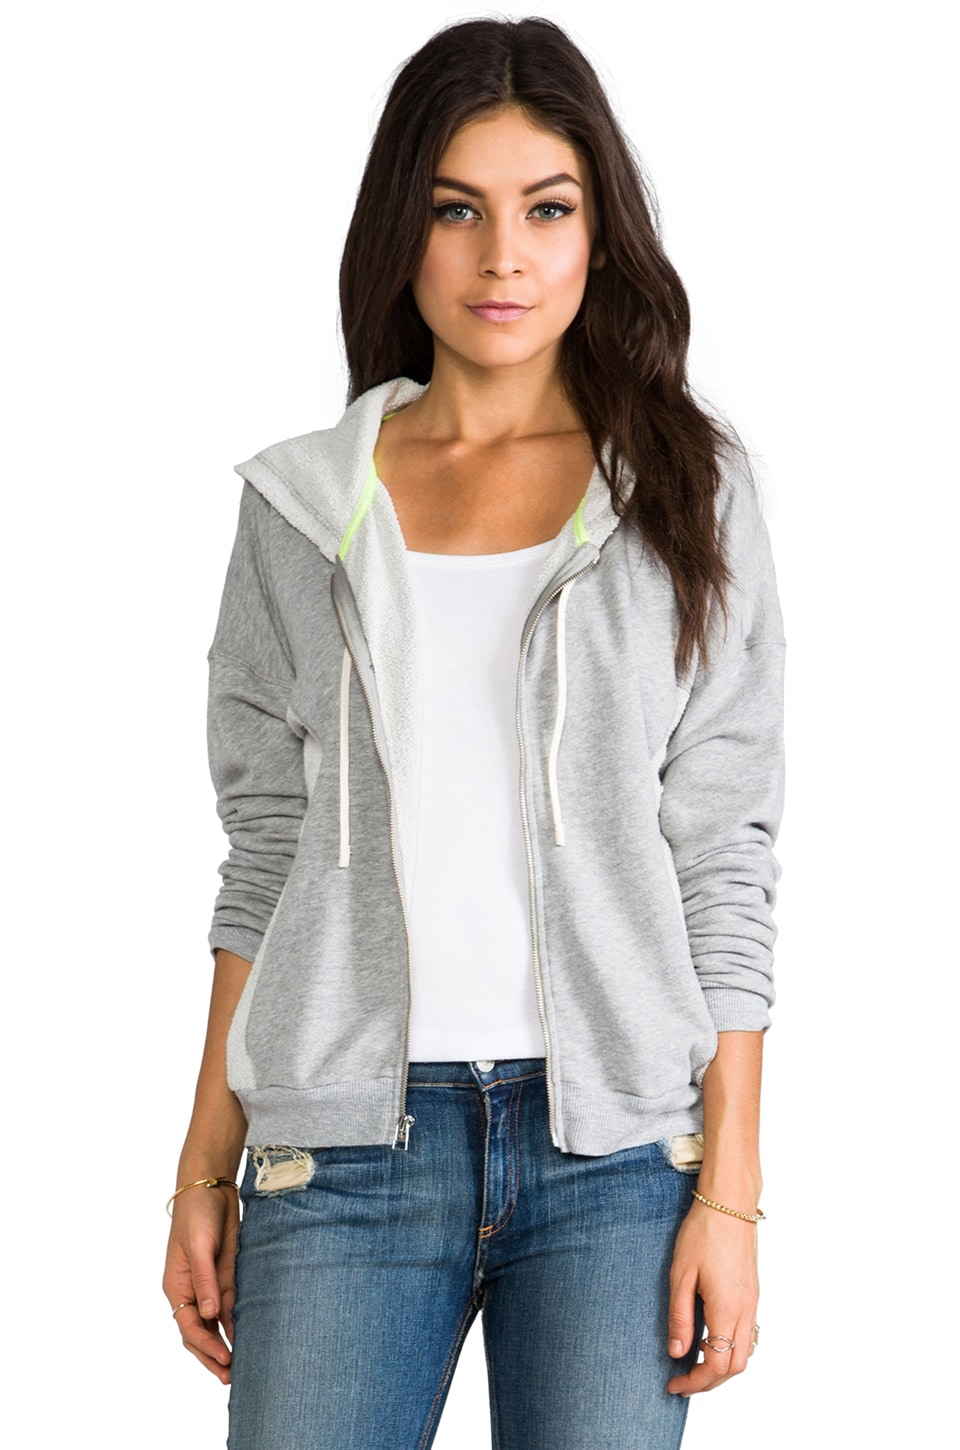 C&C California Drop Shoulder Zip Up Hoodie in Heather Grey